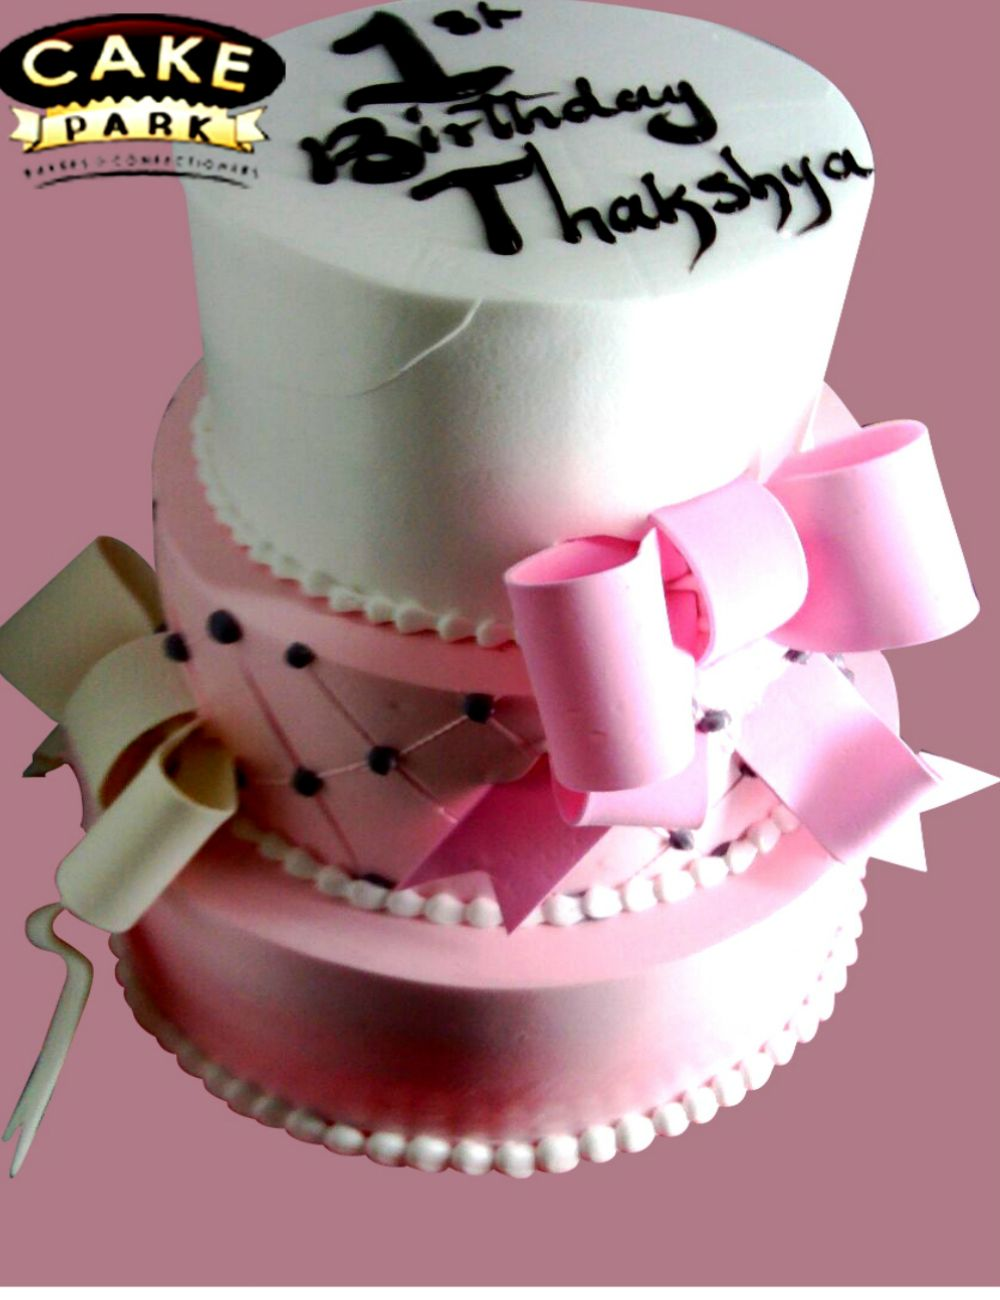 3 Tier Birthday Cake With Wide Range Of Collections For Your Son Or Daughter Order Cakes Online In Chennai And Bangalore